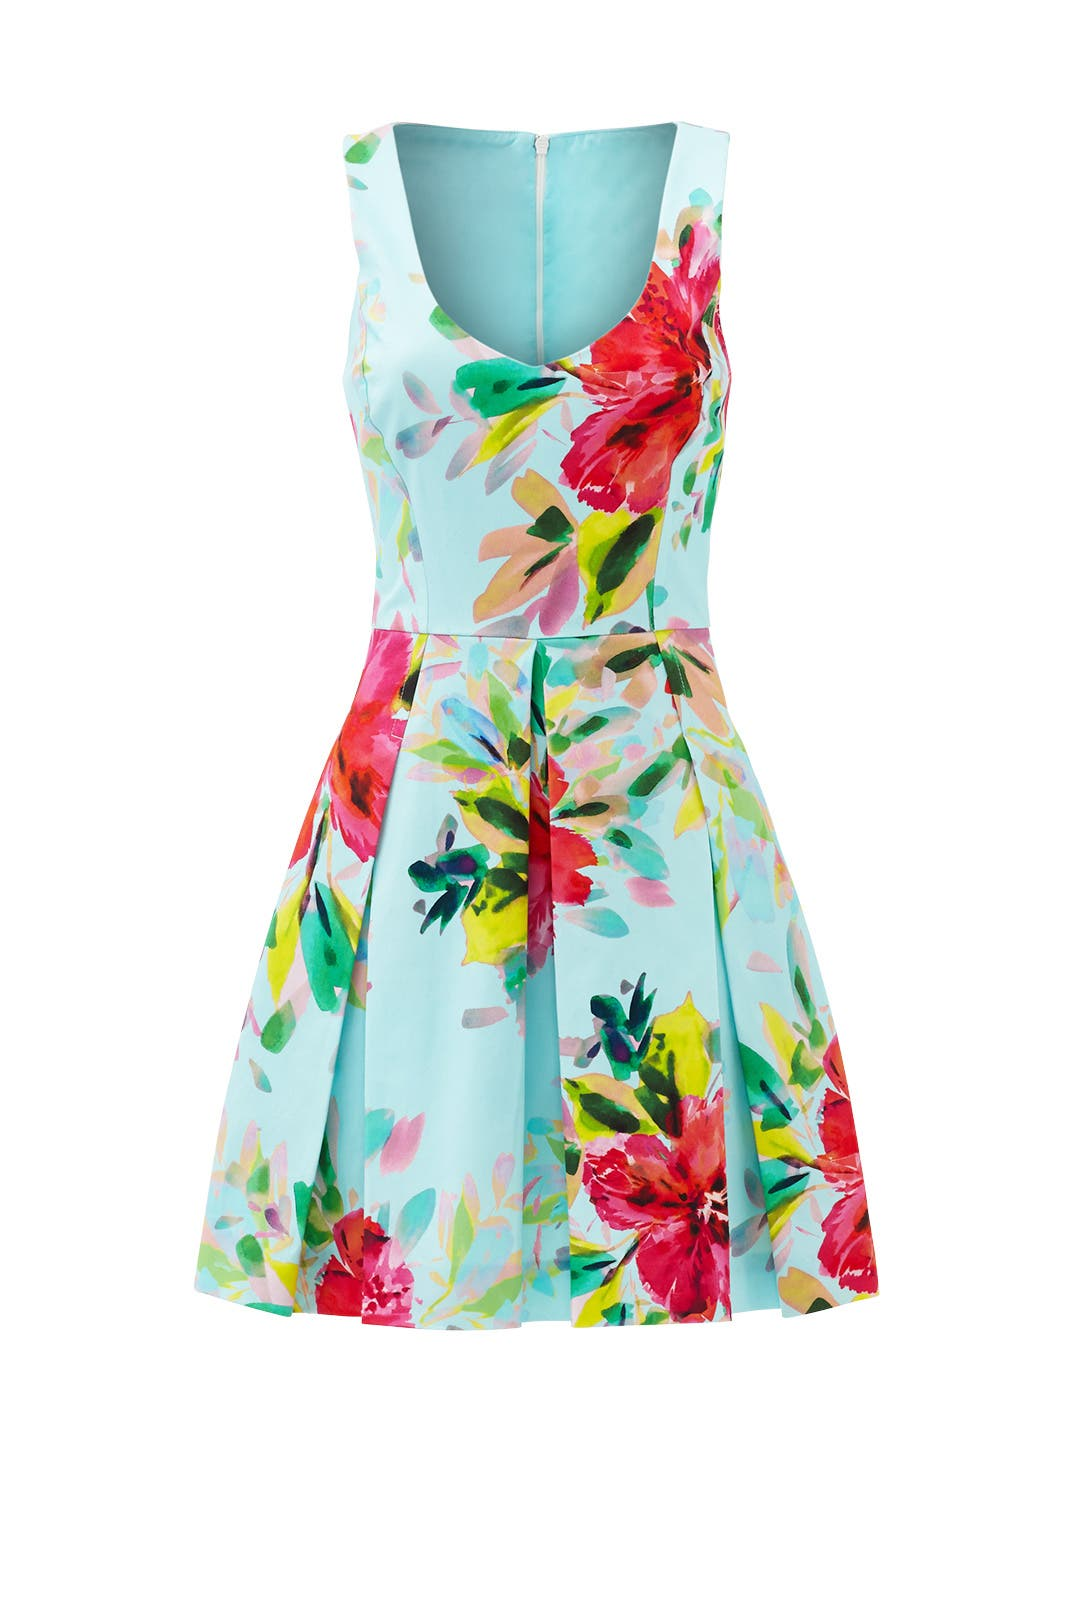 Aniya Floral Dress by Trina Turk for $60 - $70 | Rent the ...